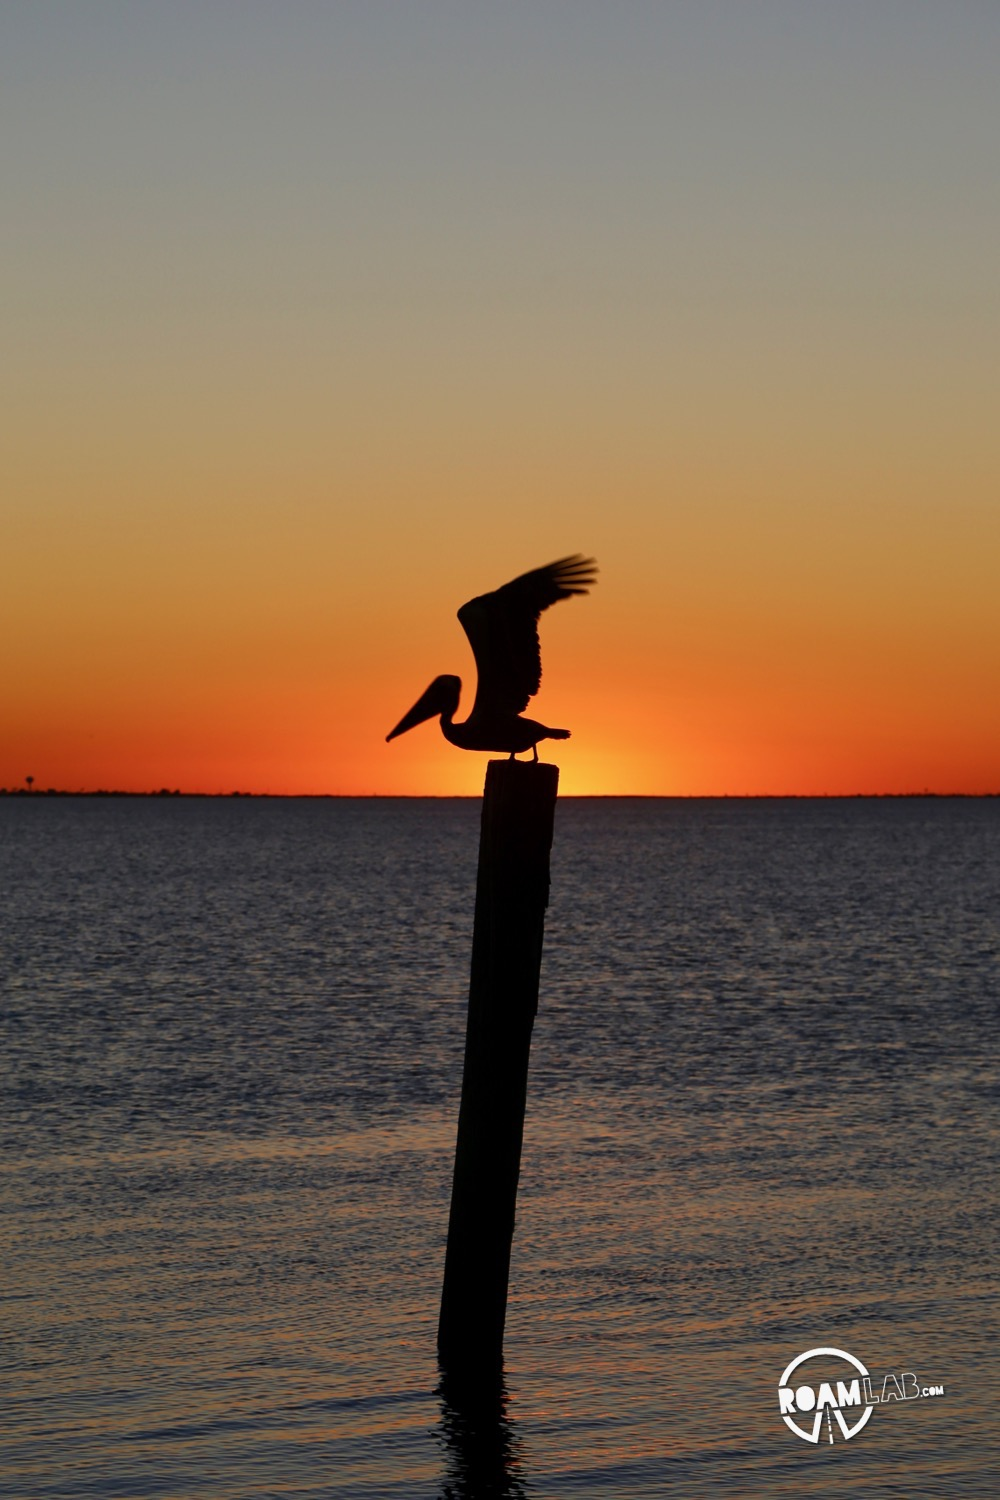 Spanish guitar strummed in the background as we watched the sunset over south padre island one last time.